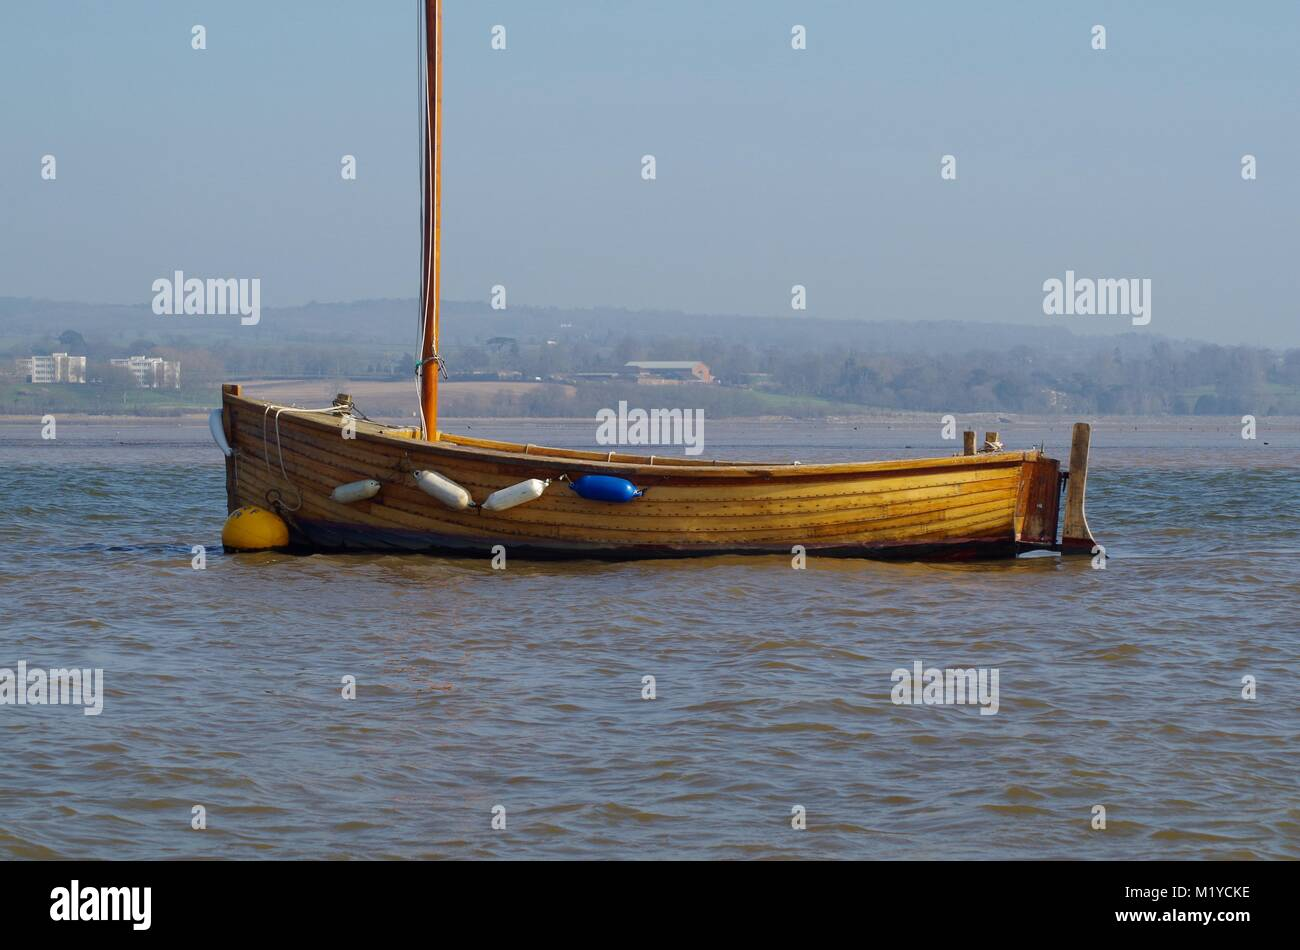 Wooden Dinghy Stock Photos & Wooden Dinghy Stock Images - Alamy